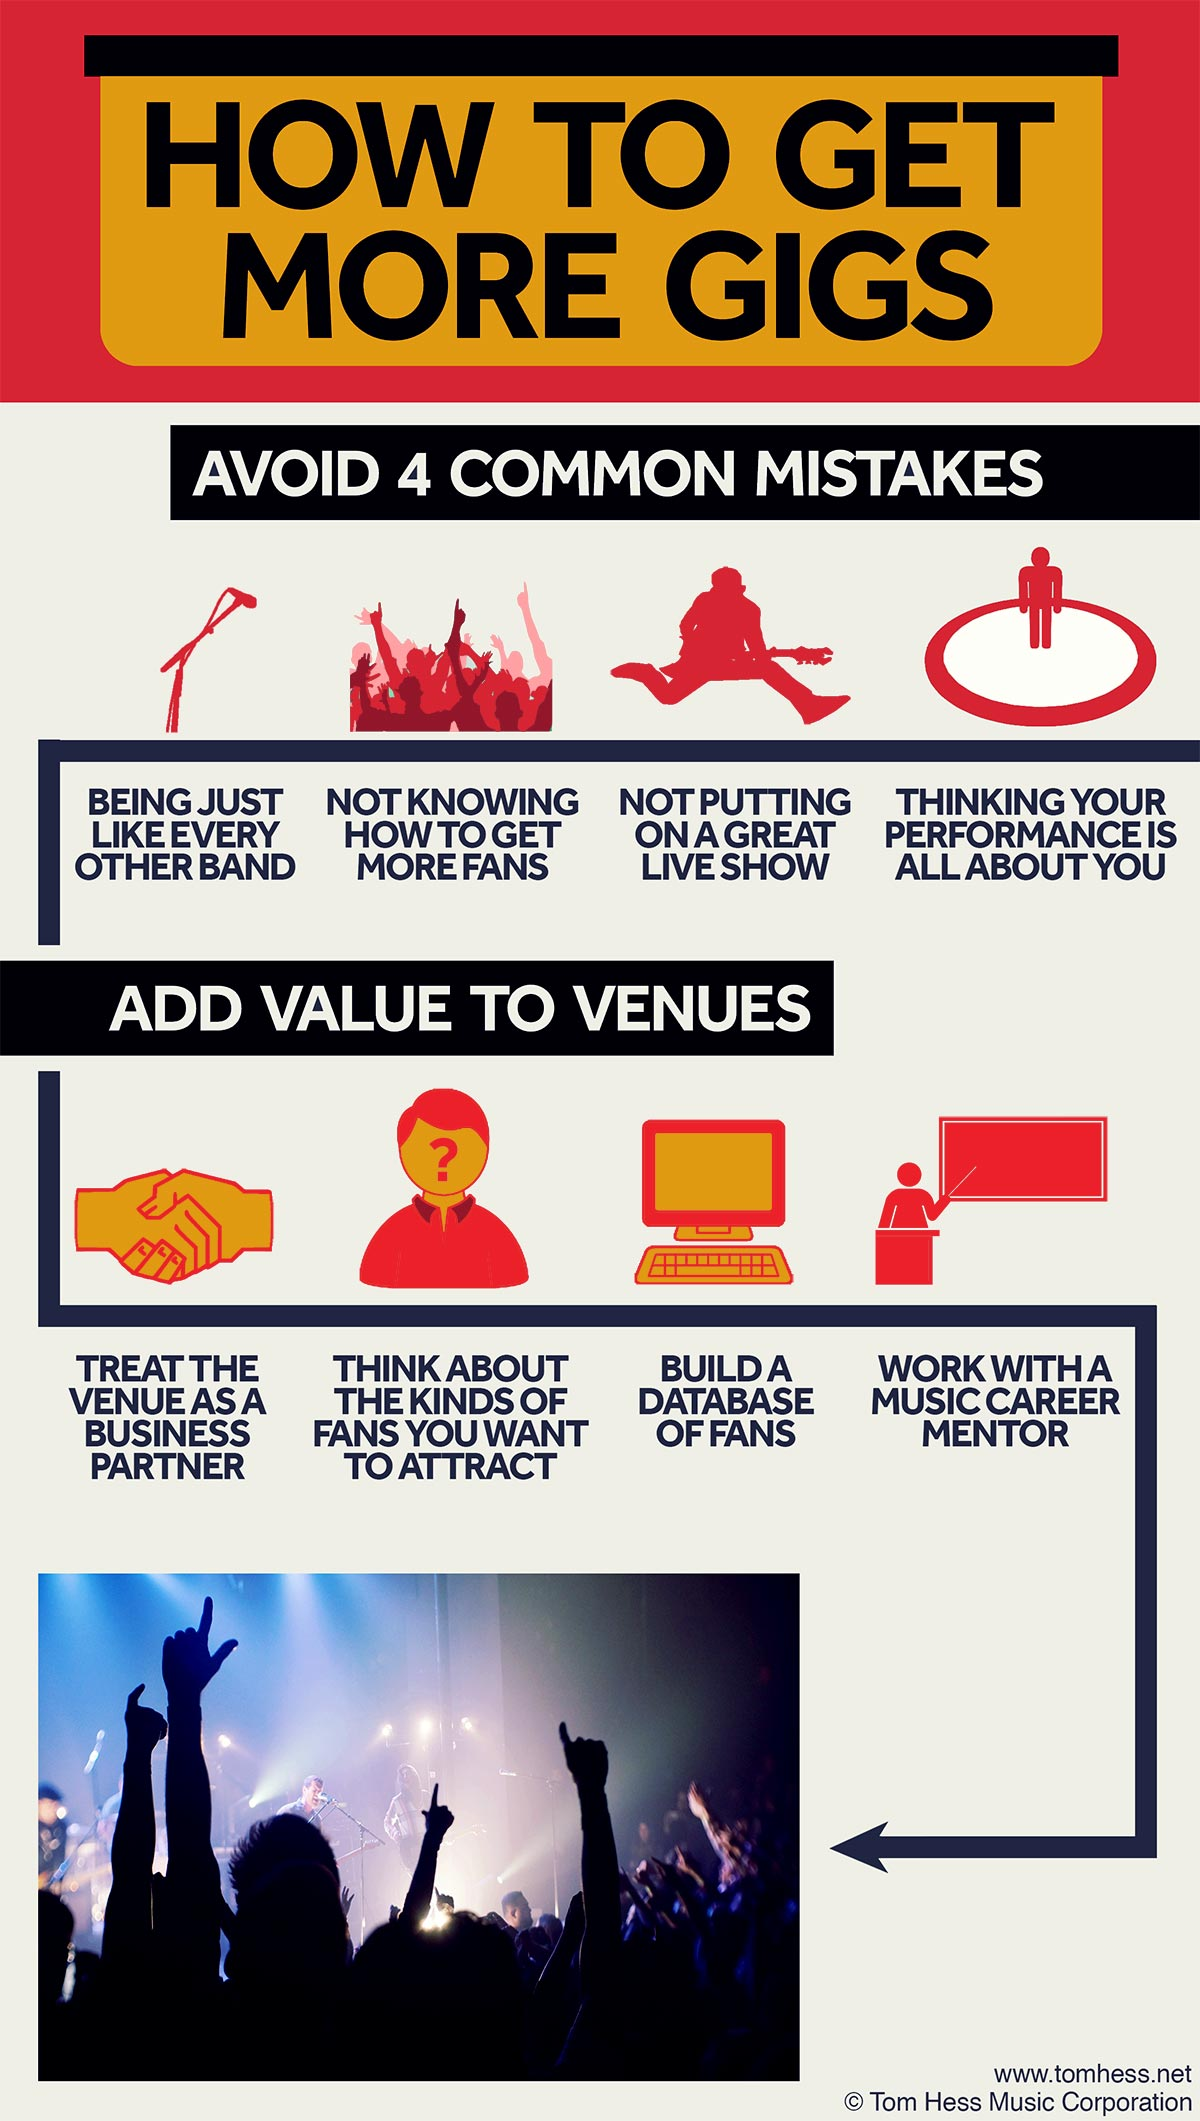 How To Get More Gigs